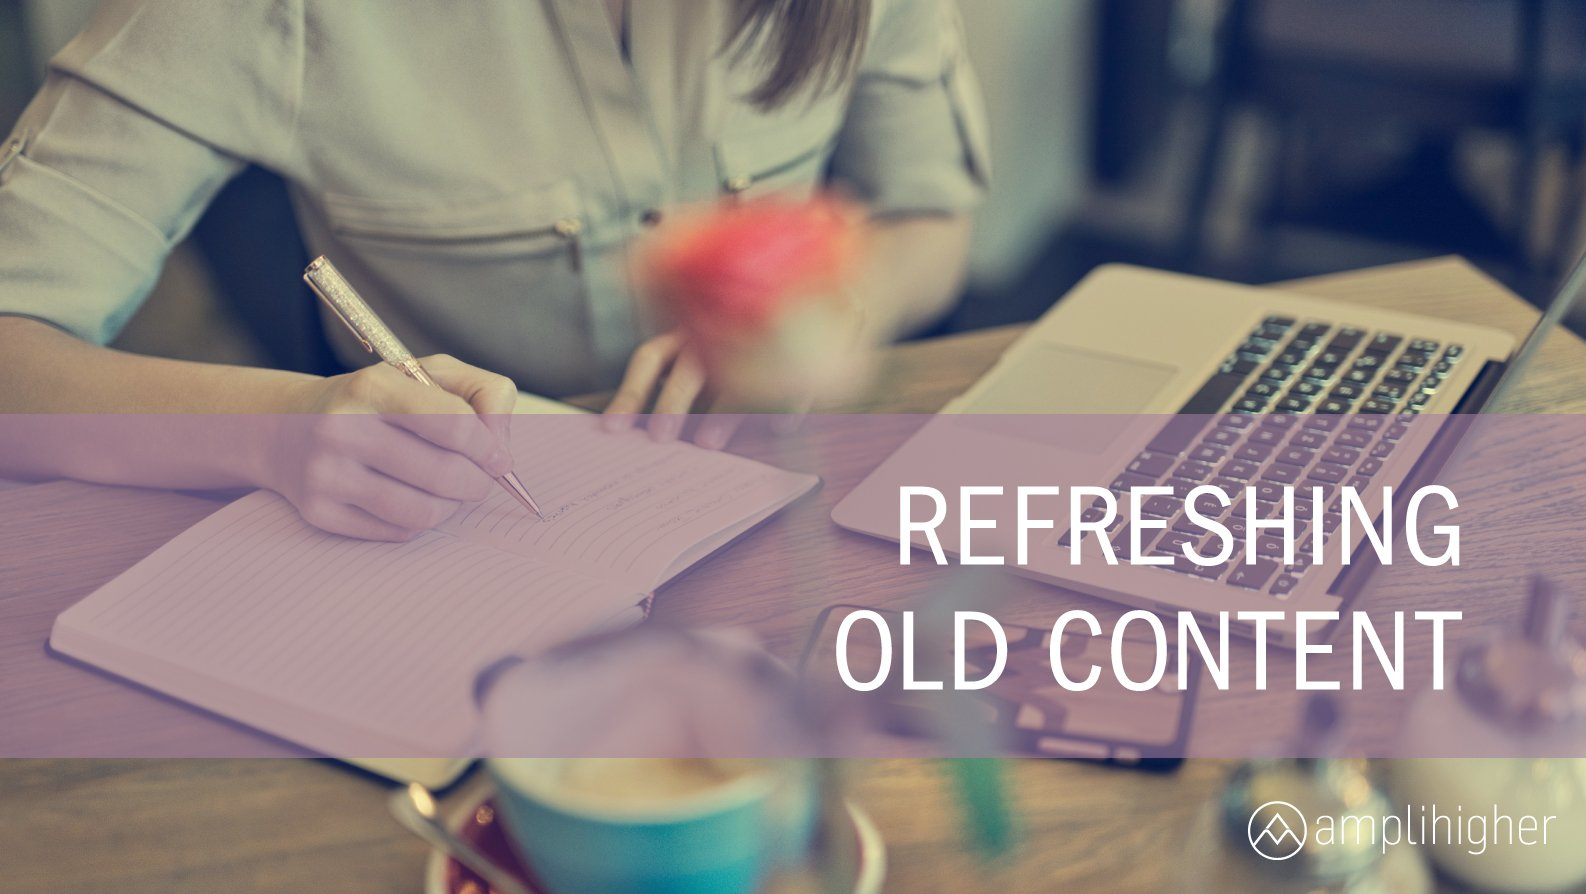 5 Easy Ways To Give Old Content a Pick-Me-Up